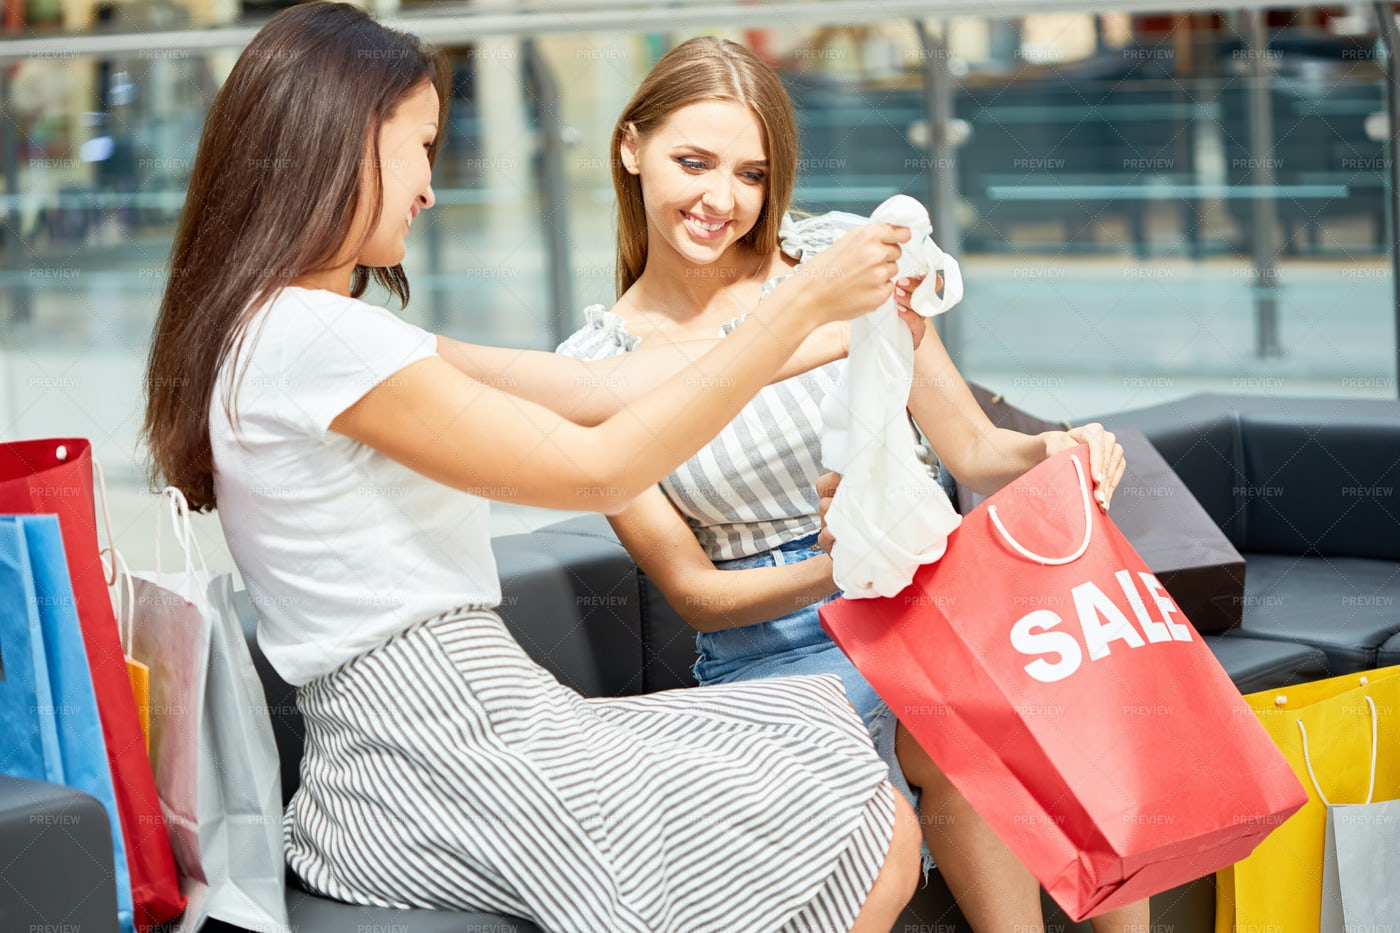 Girls Buying Clothes In Shopping...: Stock Photos